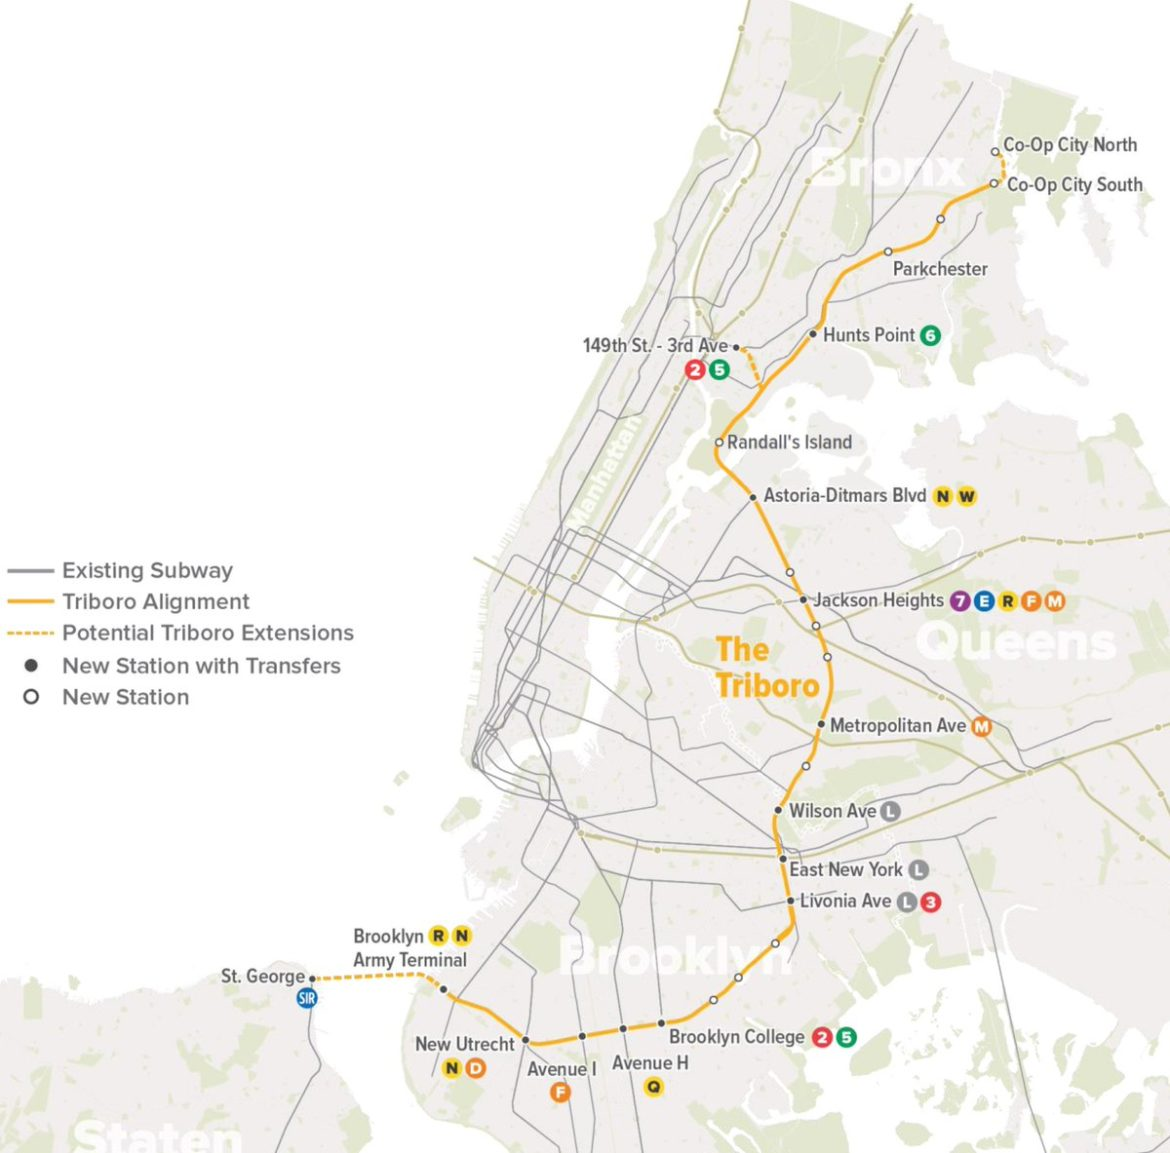 Jackson Heights Subway Map.Call To Study New Transit Line Linking Bronx Queens And Brooklyn